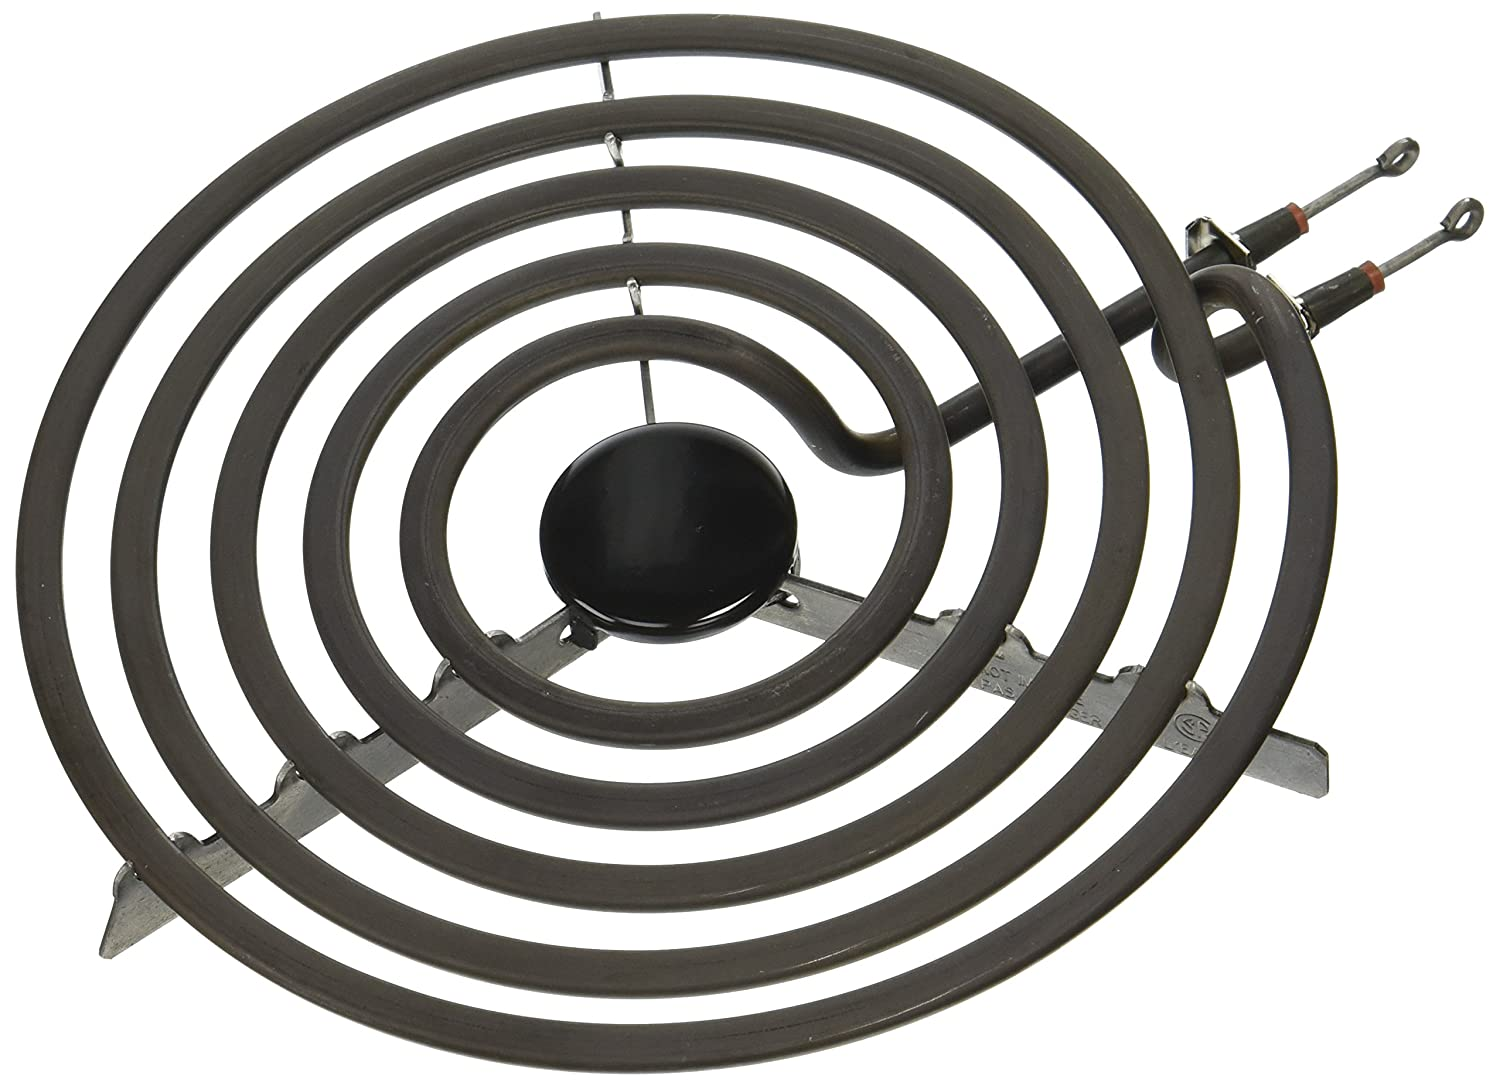 LUX PRODUCTS RT8Y-5210 Standard Electric Top Burner, 8